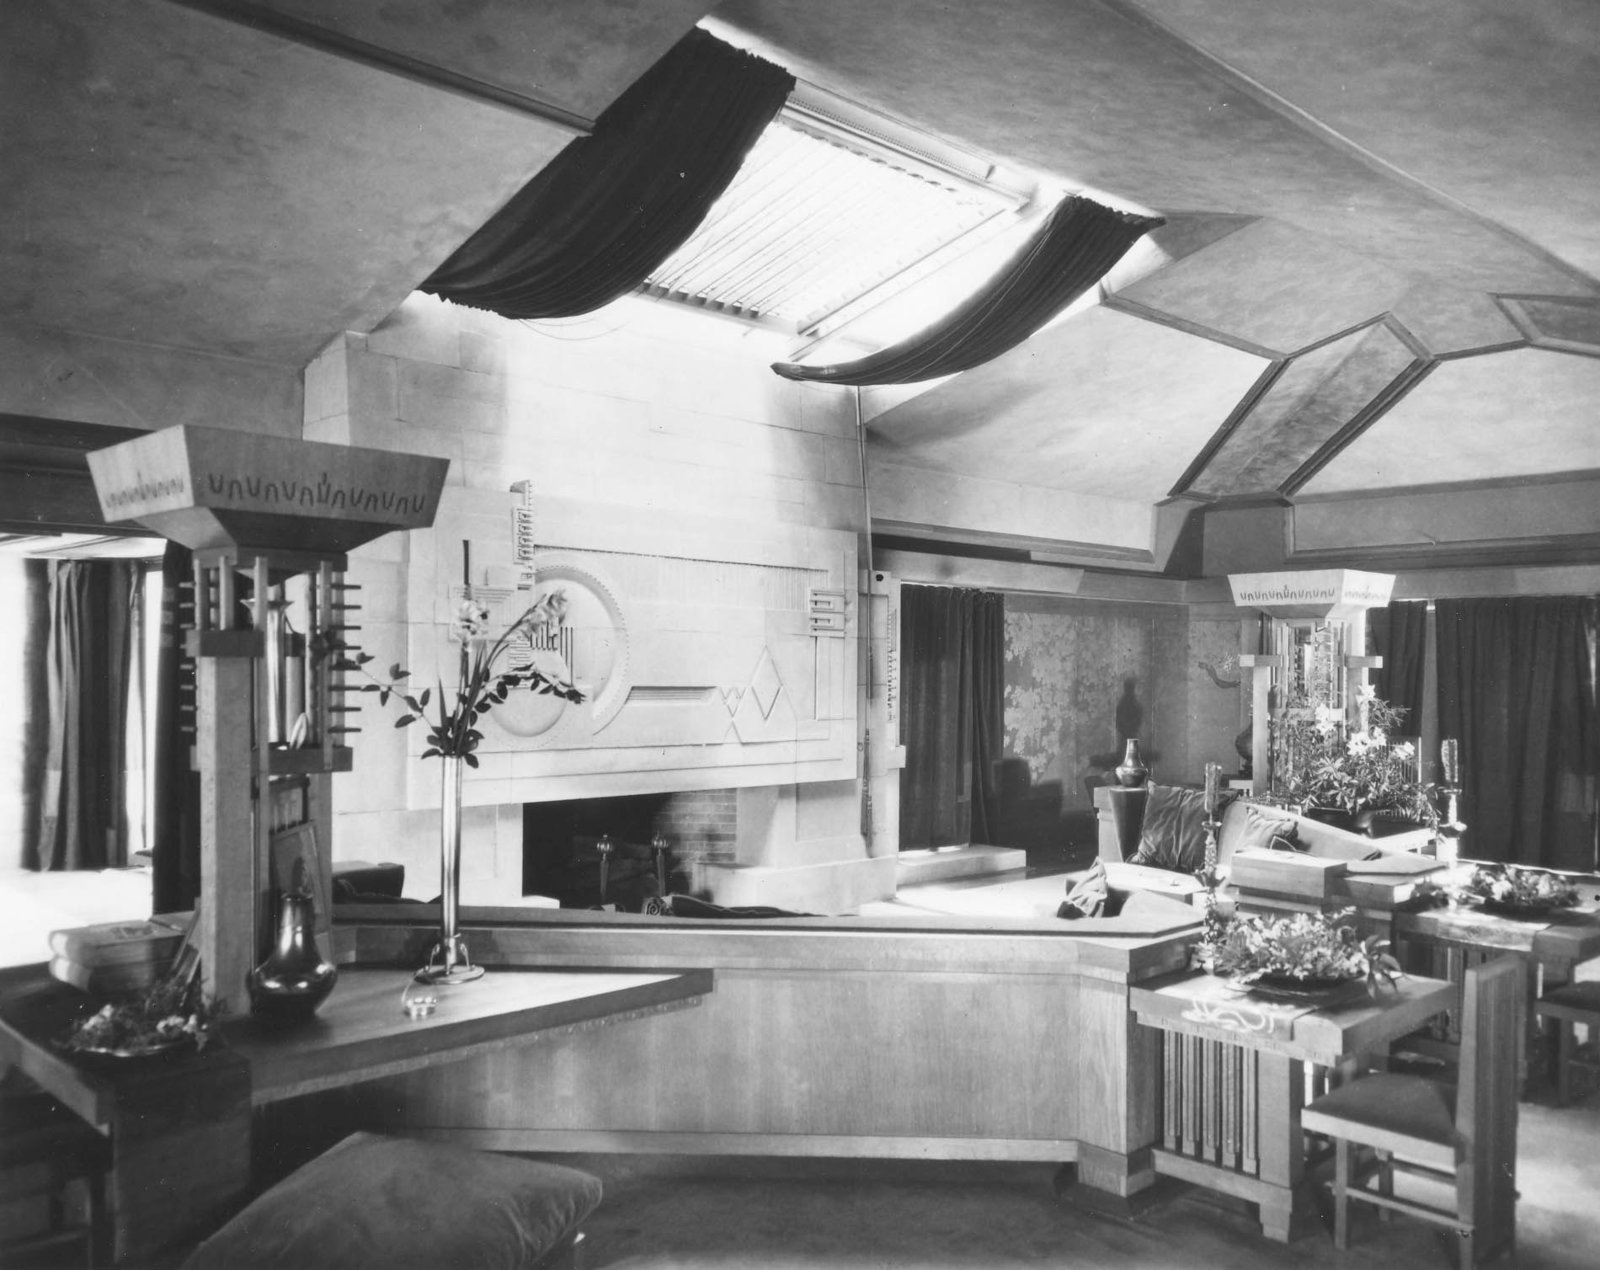 """The Hollyhock House reveals Wright's usage of an open concept plan and reminds us of how he was a master manipulator of space. As seen in this archival image of the living room, it became one of his most influential projects that spread the idea throughout the architectural community. Our tour guide—also known as our """"docent""""—described to us, """"For Wright, compression was always followed by relief. After passing through low entry hallways and multiple columns, you then enter large open spaces through dramatic entrances."""""""